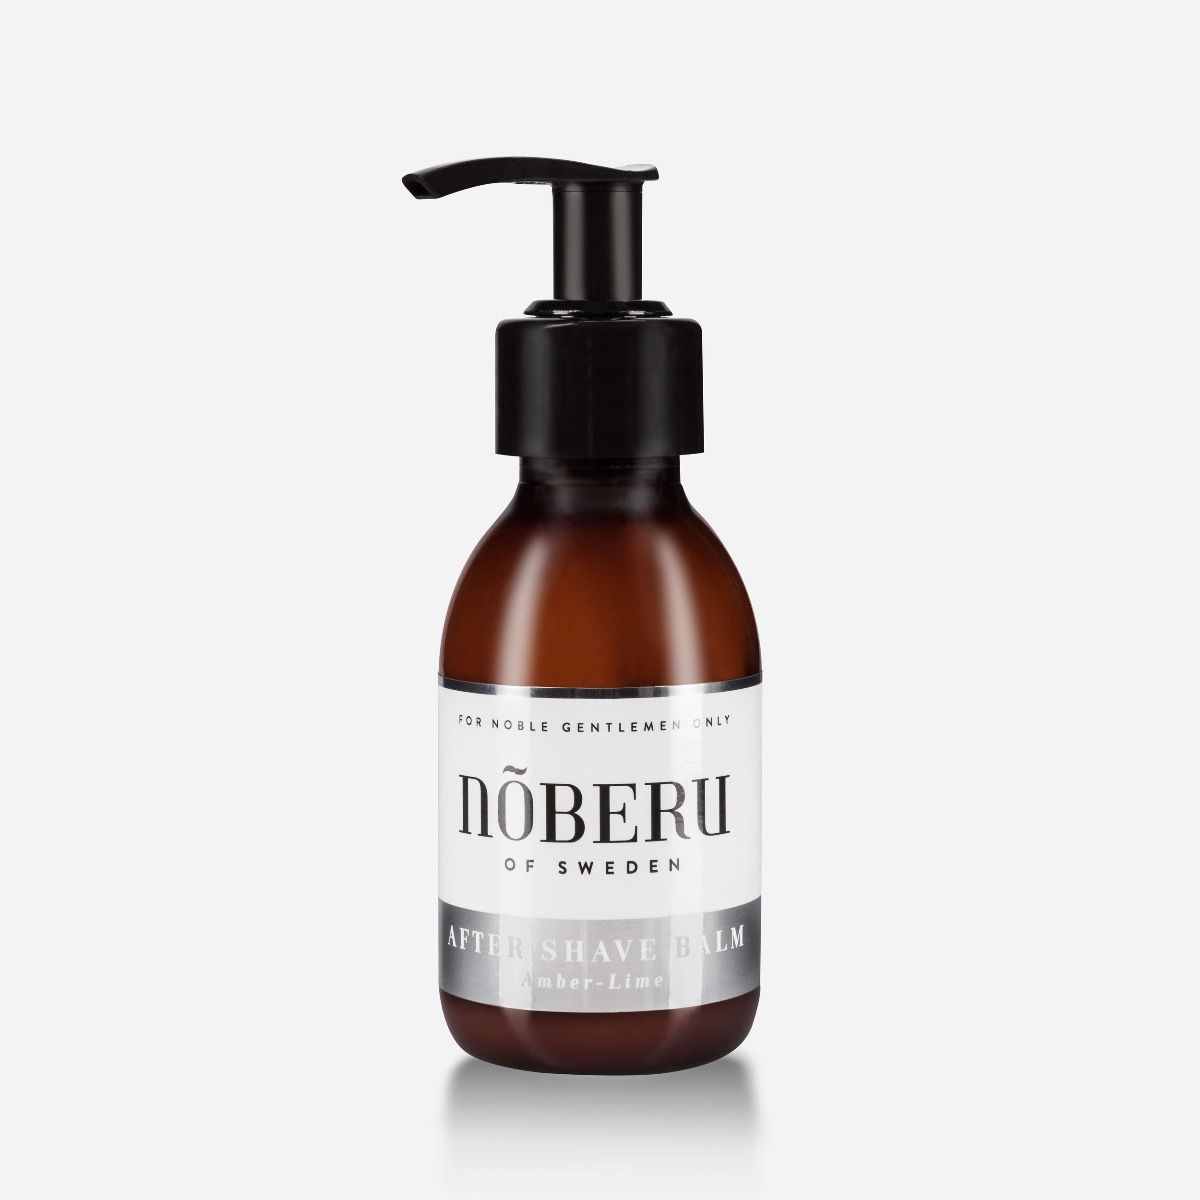 Nõberu After-Shave Balm Amber-Lime 130ml